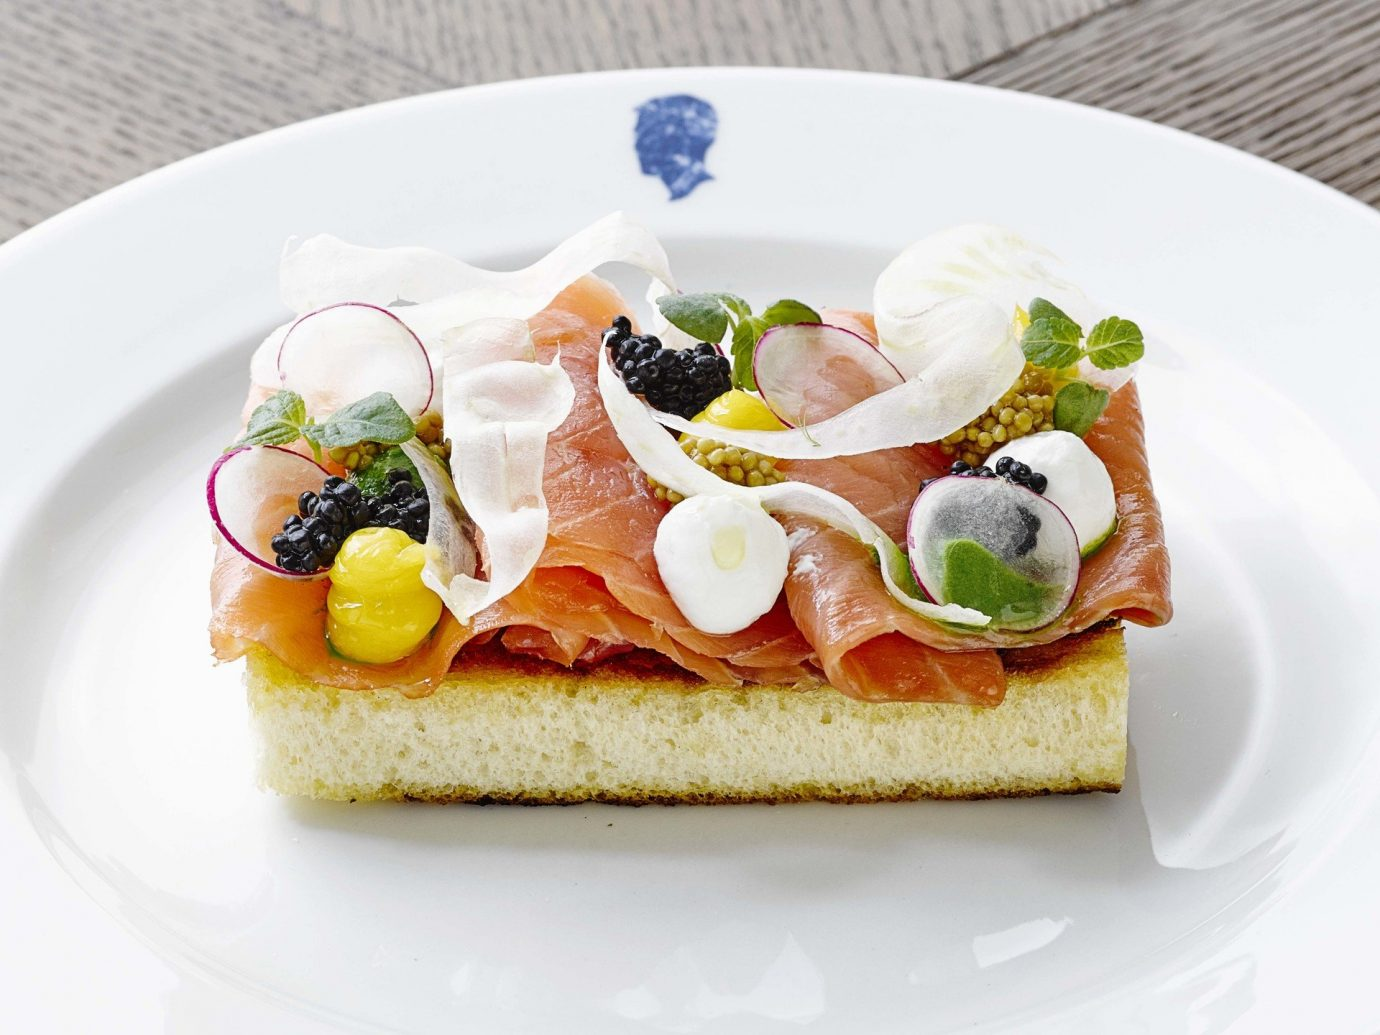 Hotels Travel Tips plate food table dish meal breakfast slice smoked salmon cuisine white canapé bruschetta produce hors d oeuvre toast prosciutto sliced dessert arranged